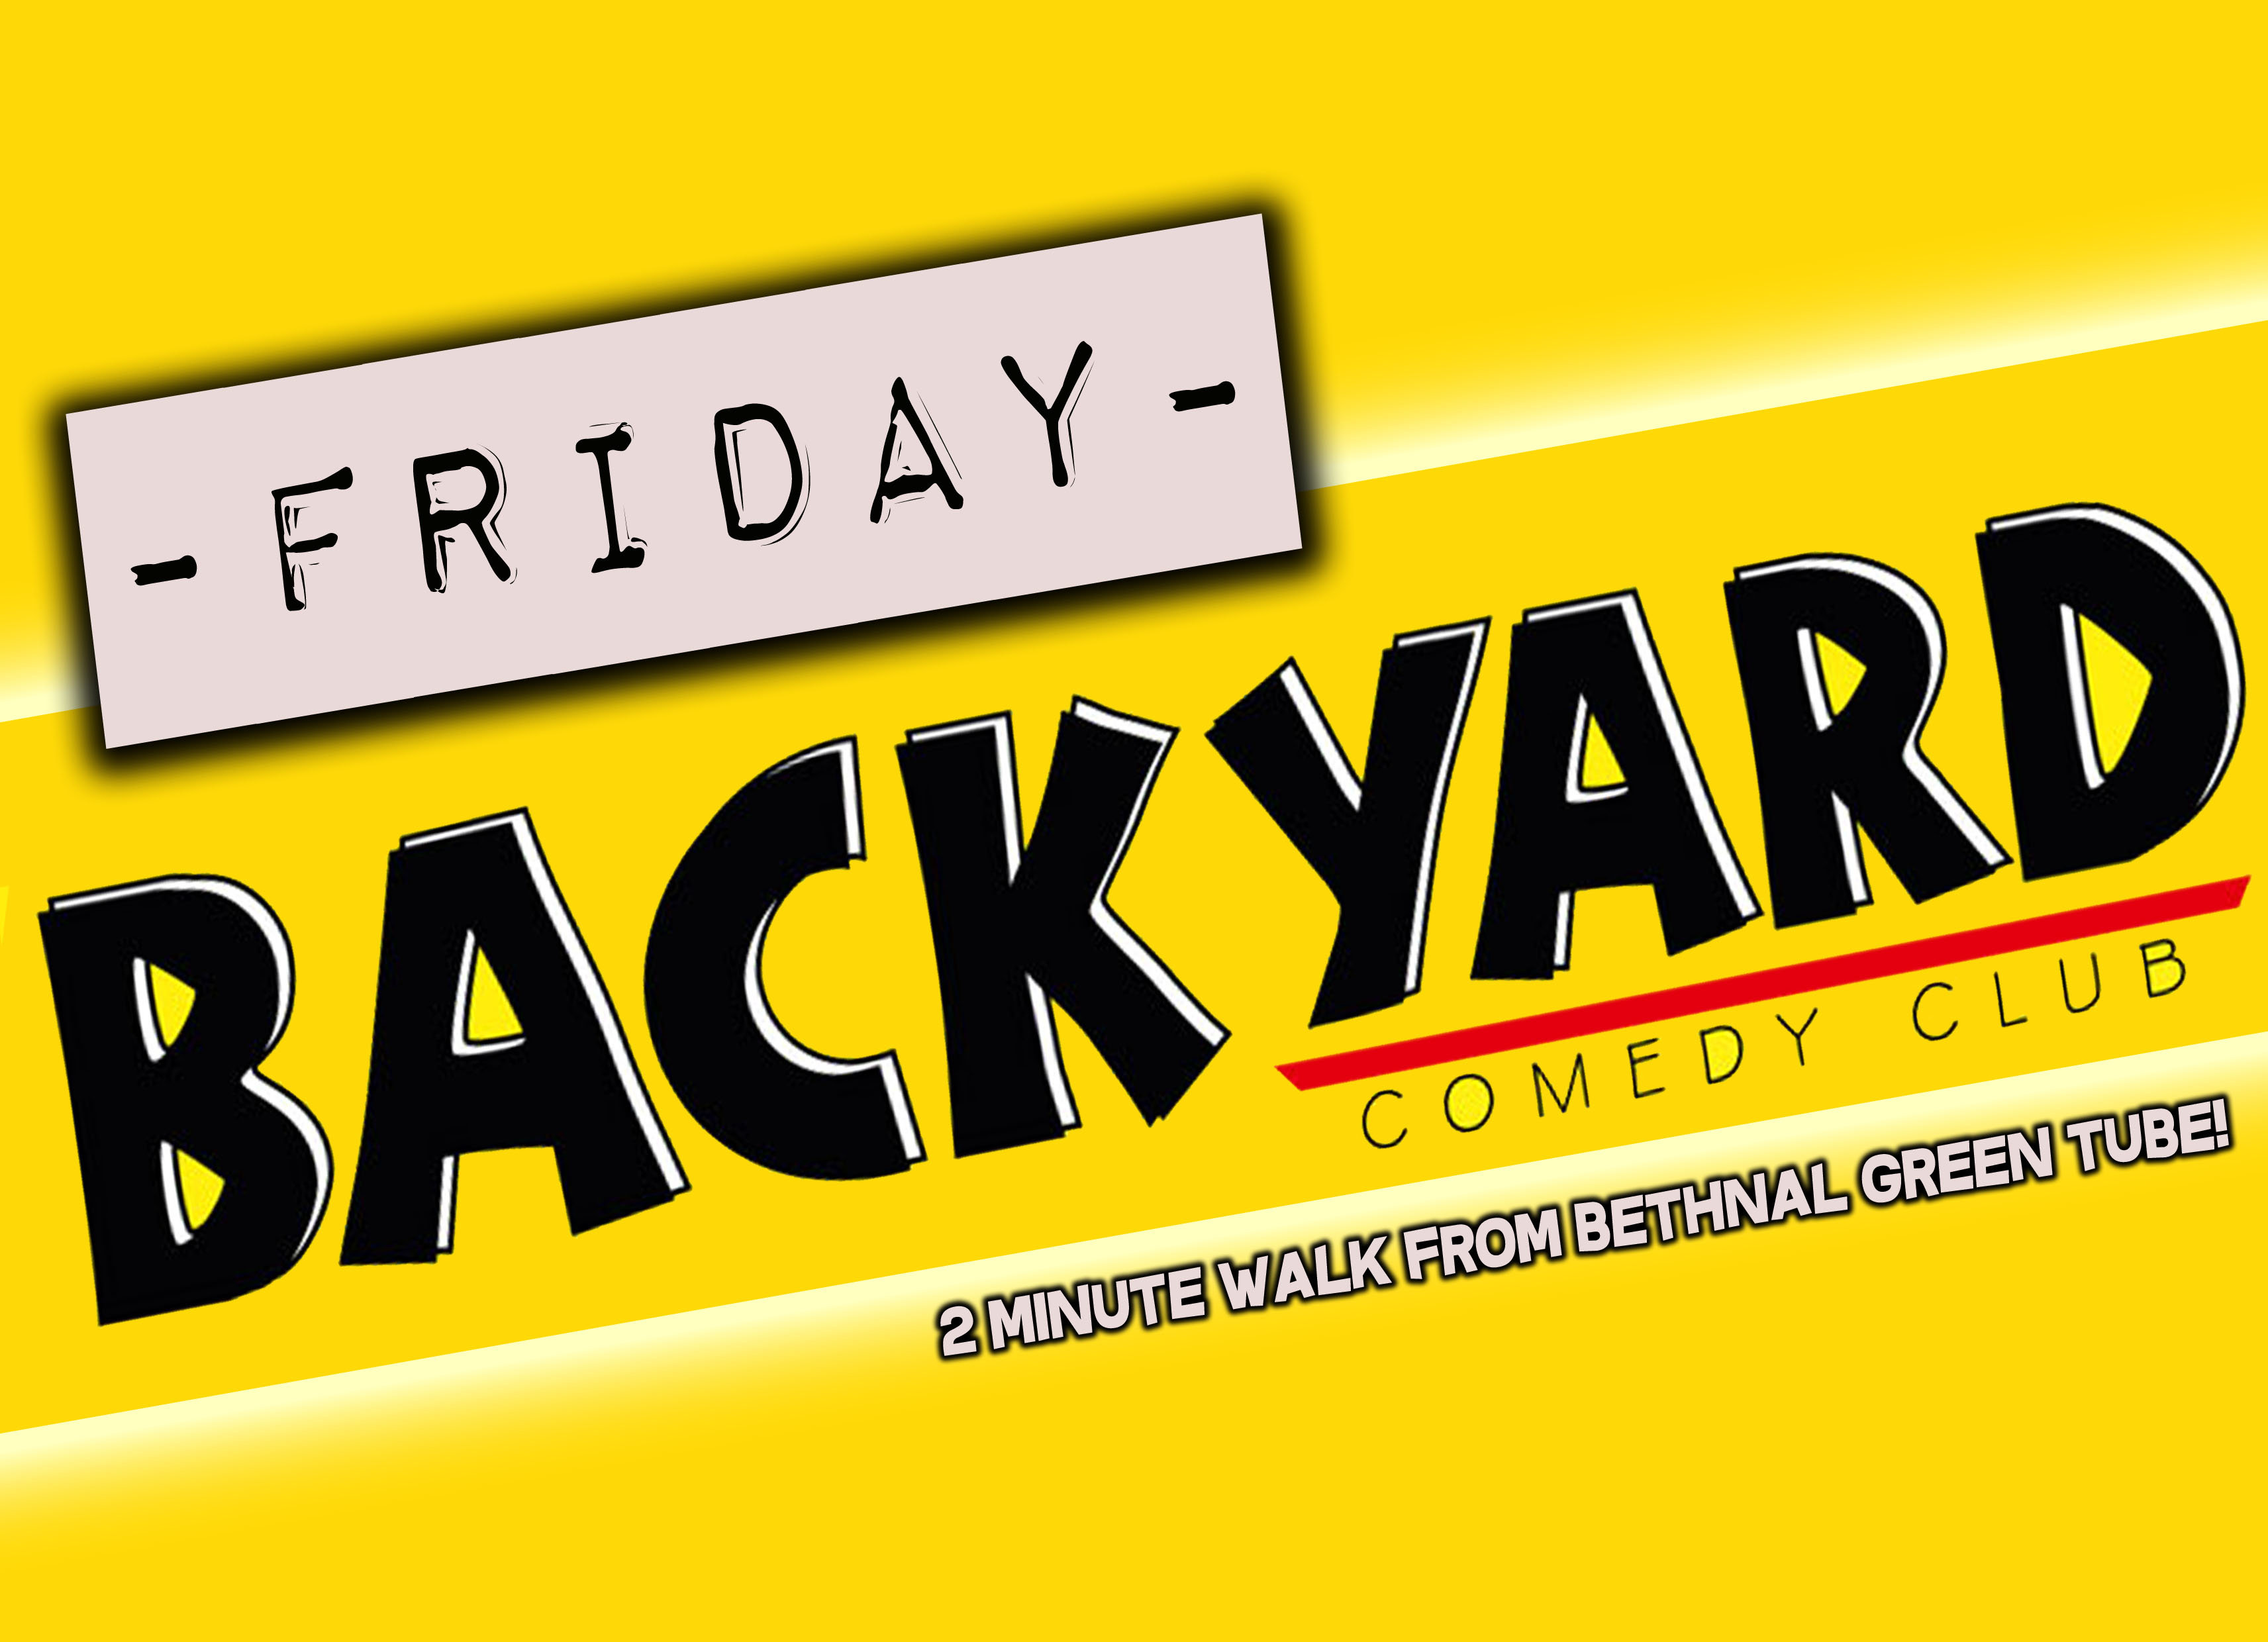 Backyard comedy club   friday night jokepit comedy night tickets